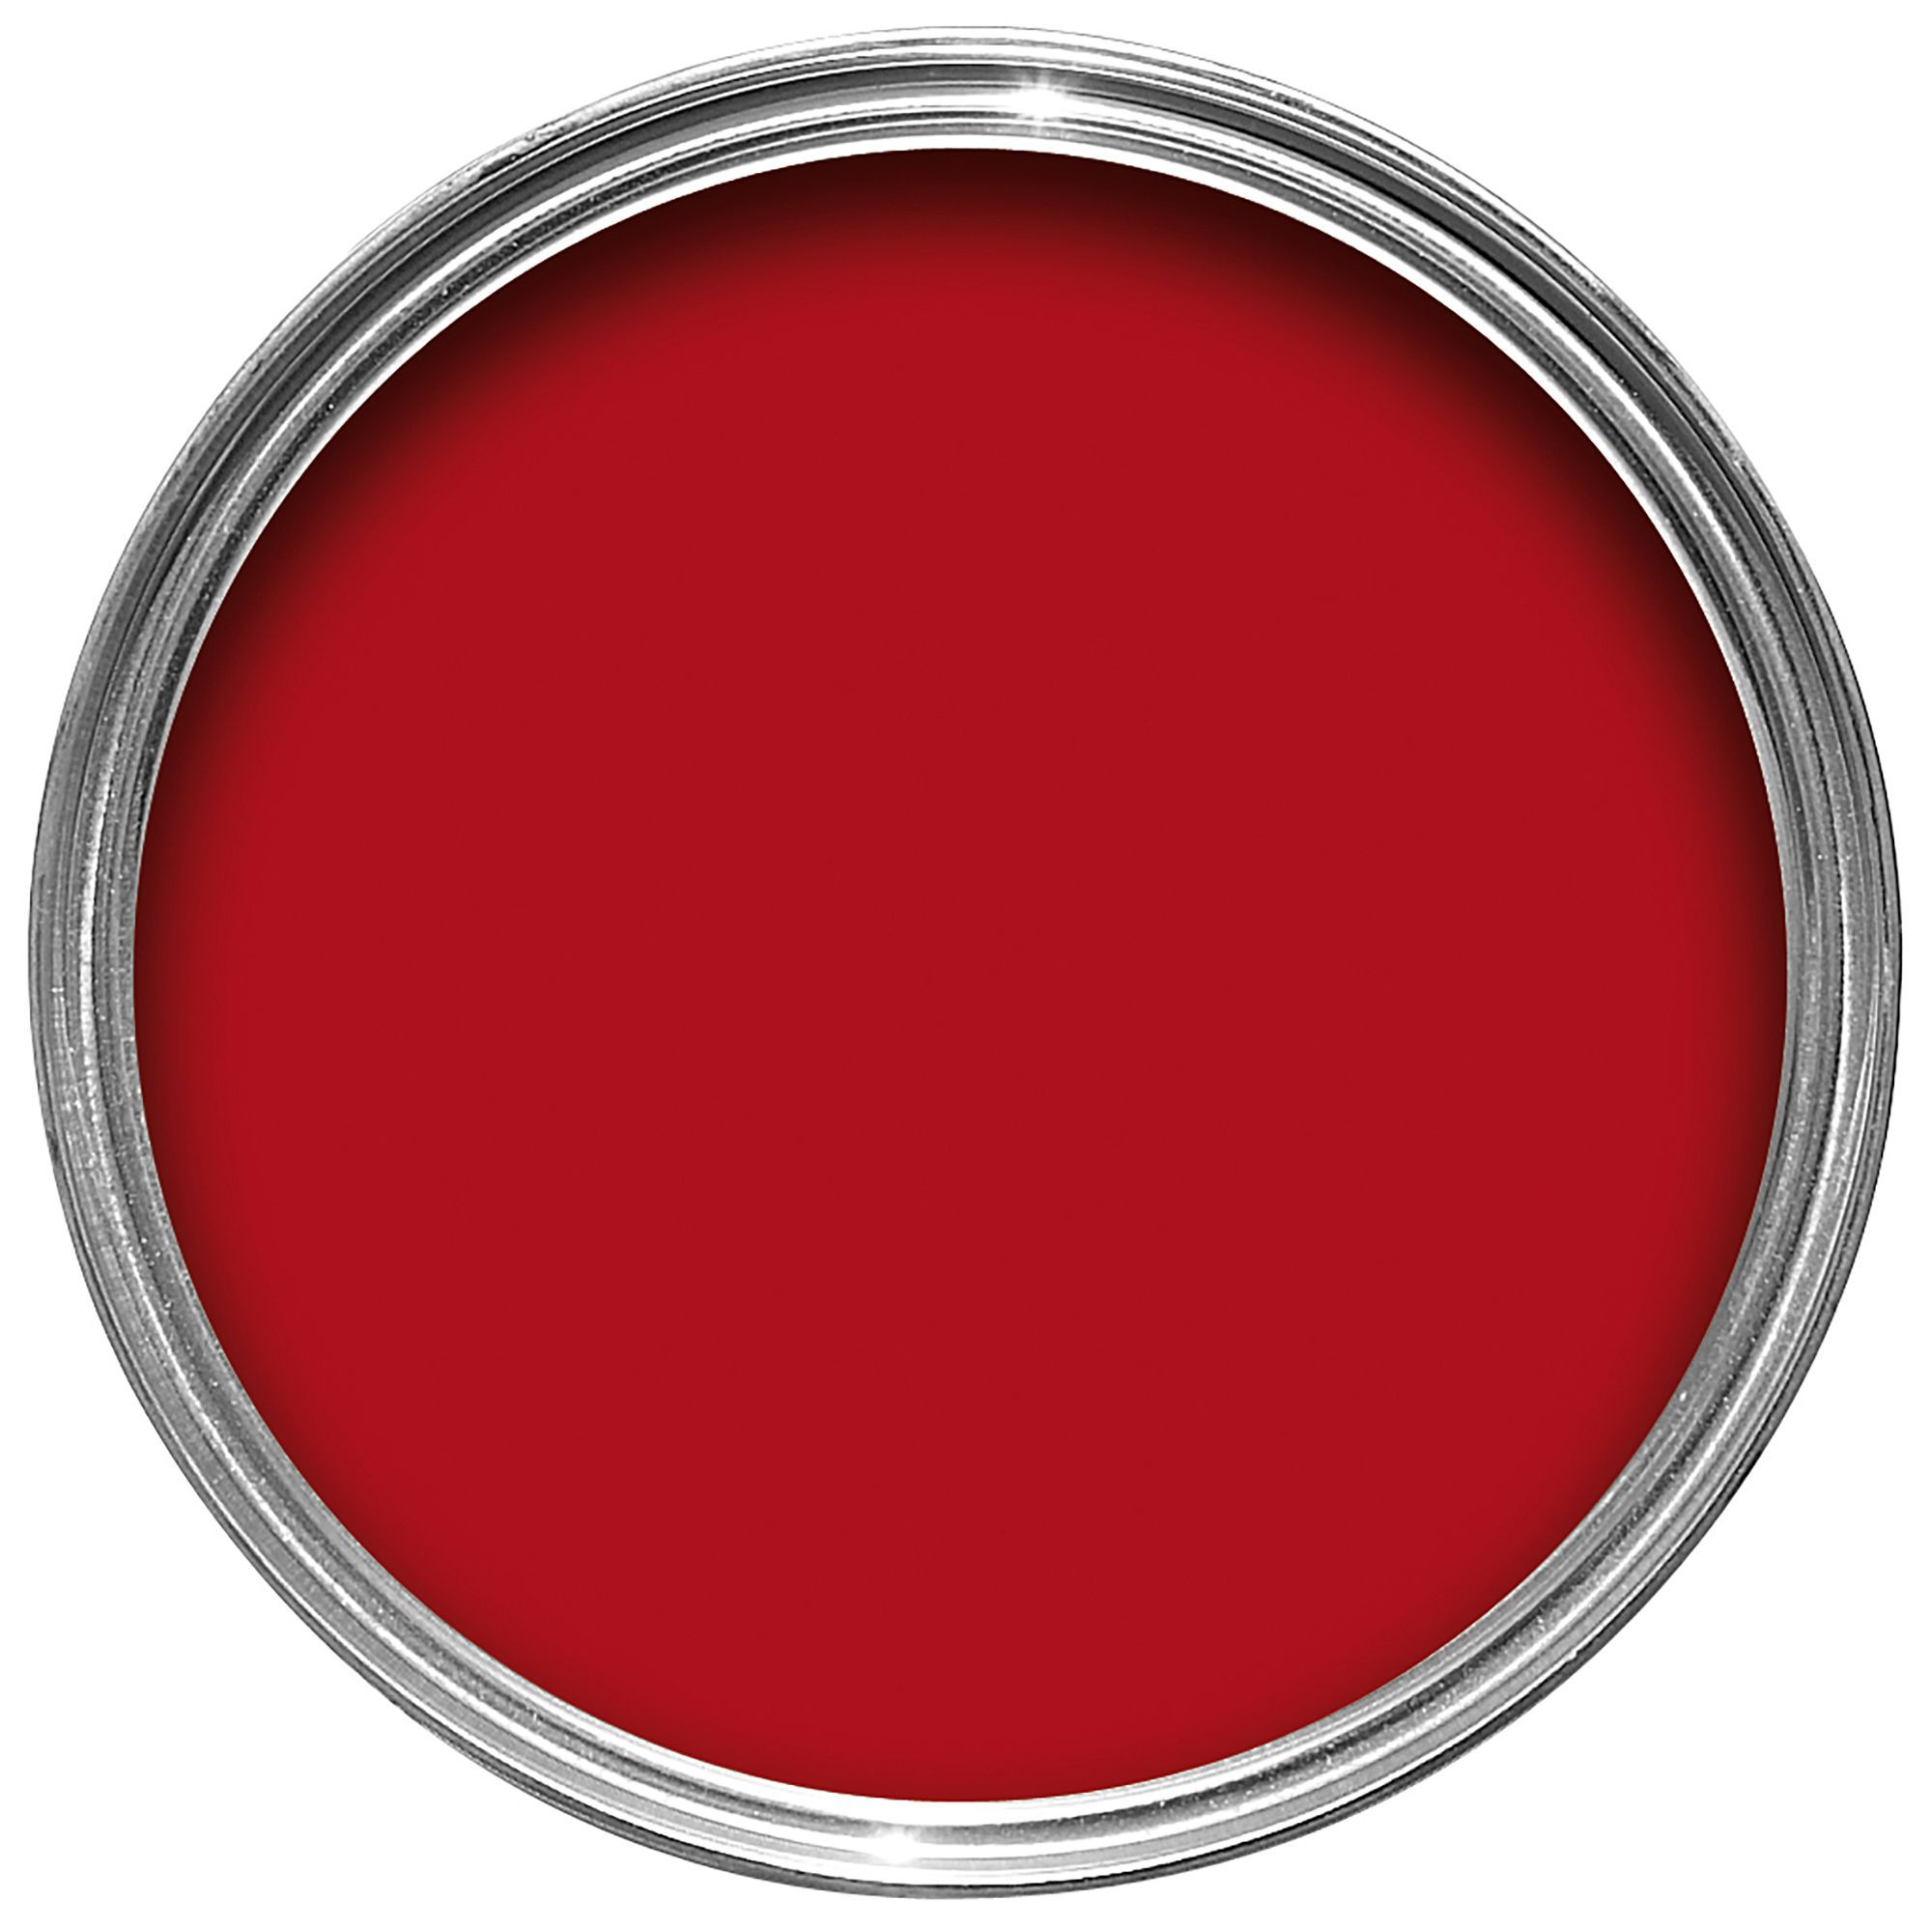 Dulux weathershield external volcanic red gloss paint Classic red paint color